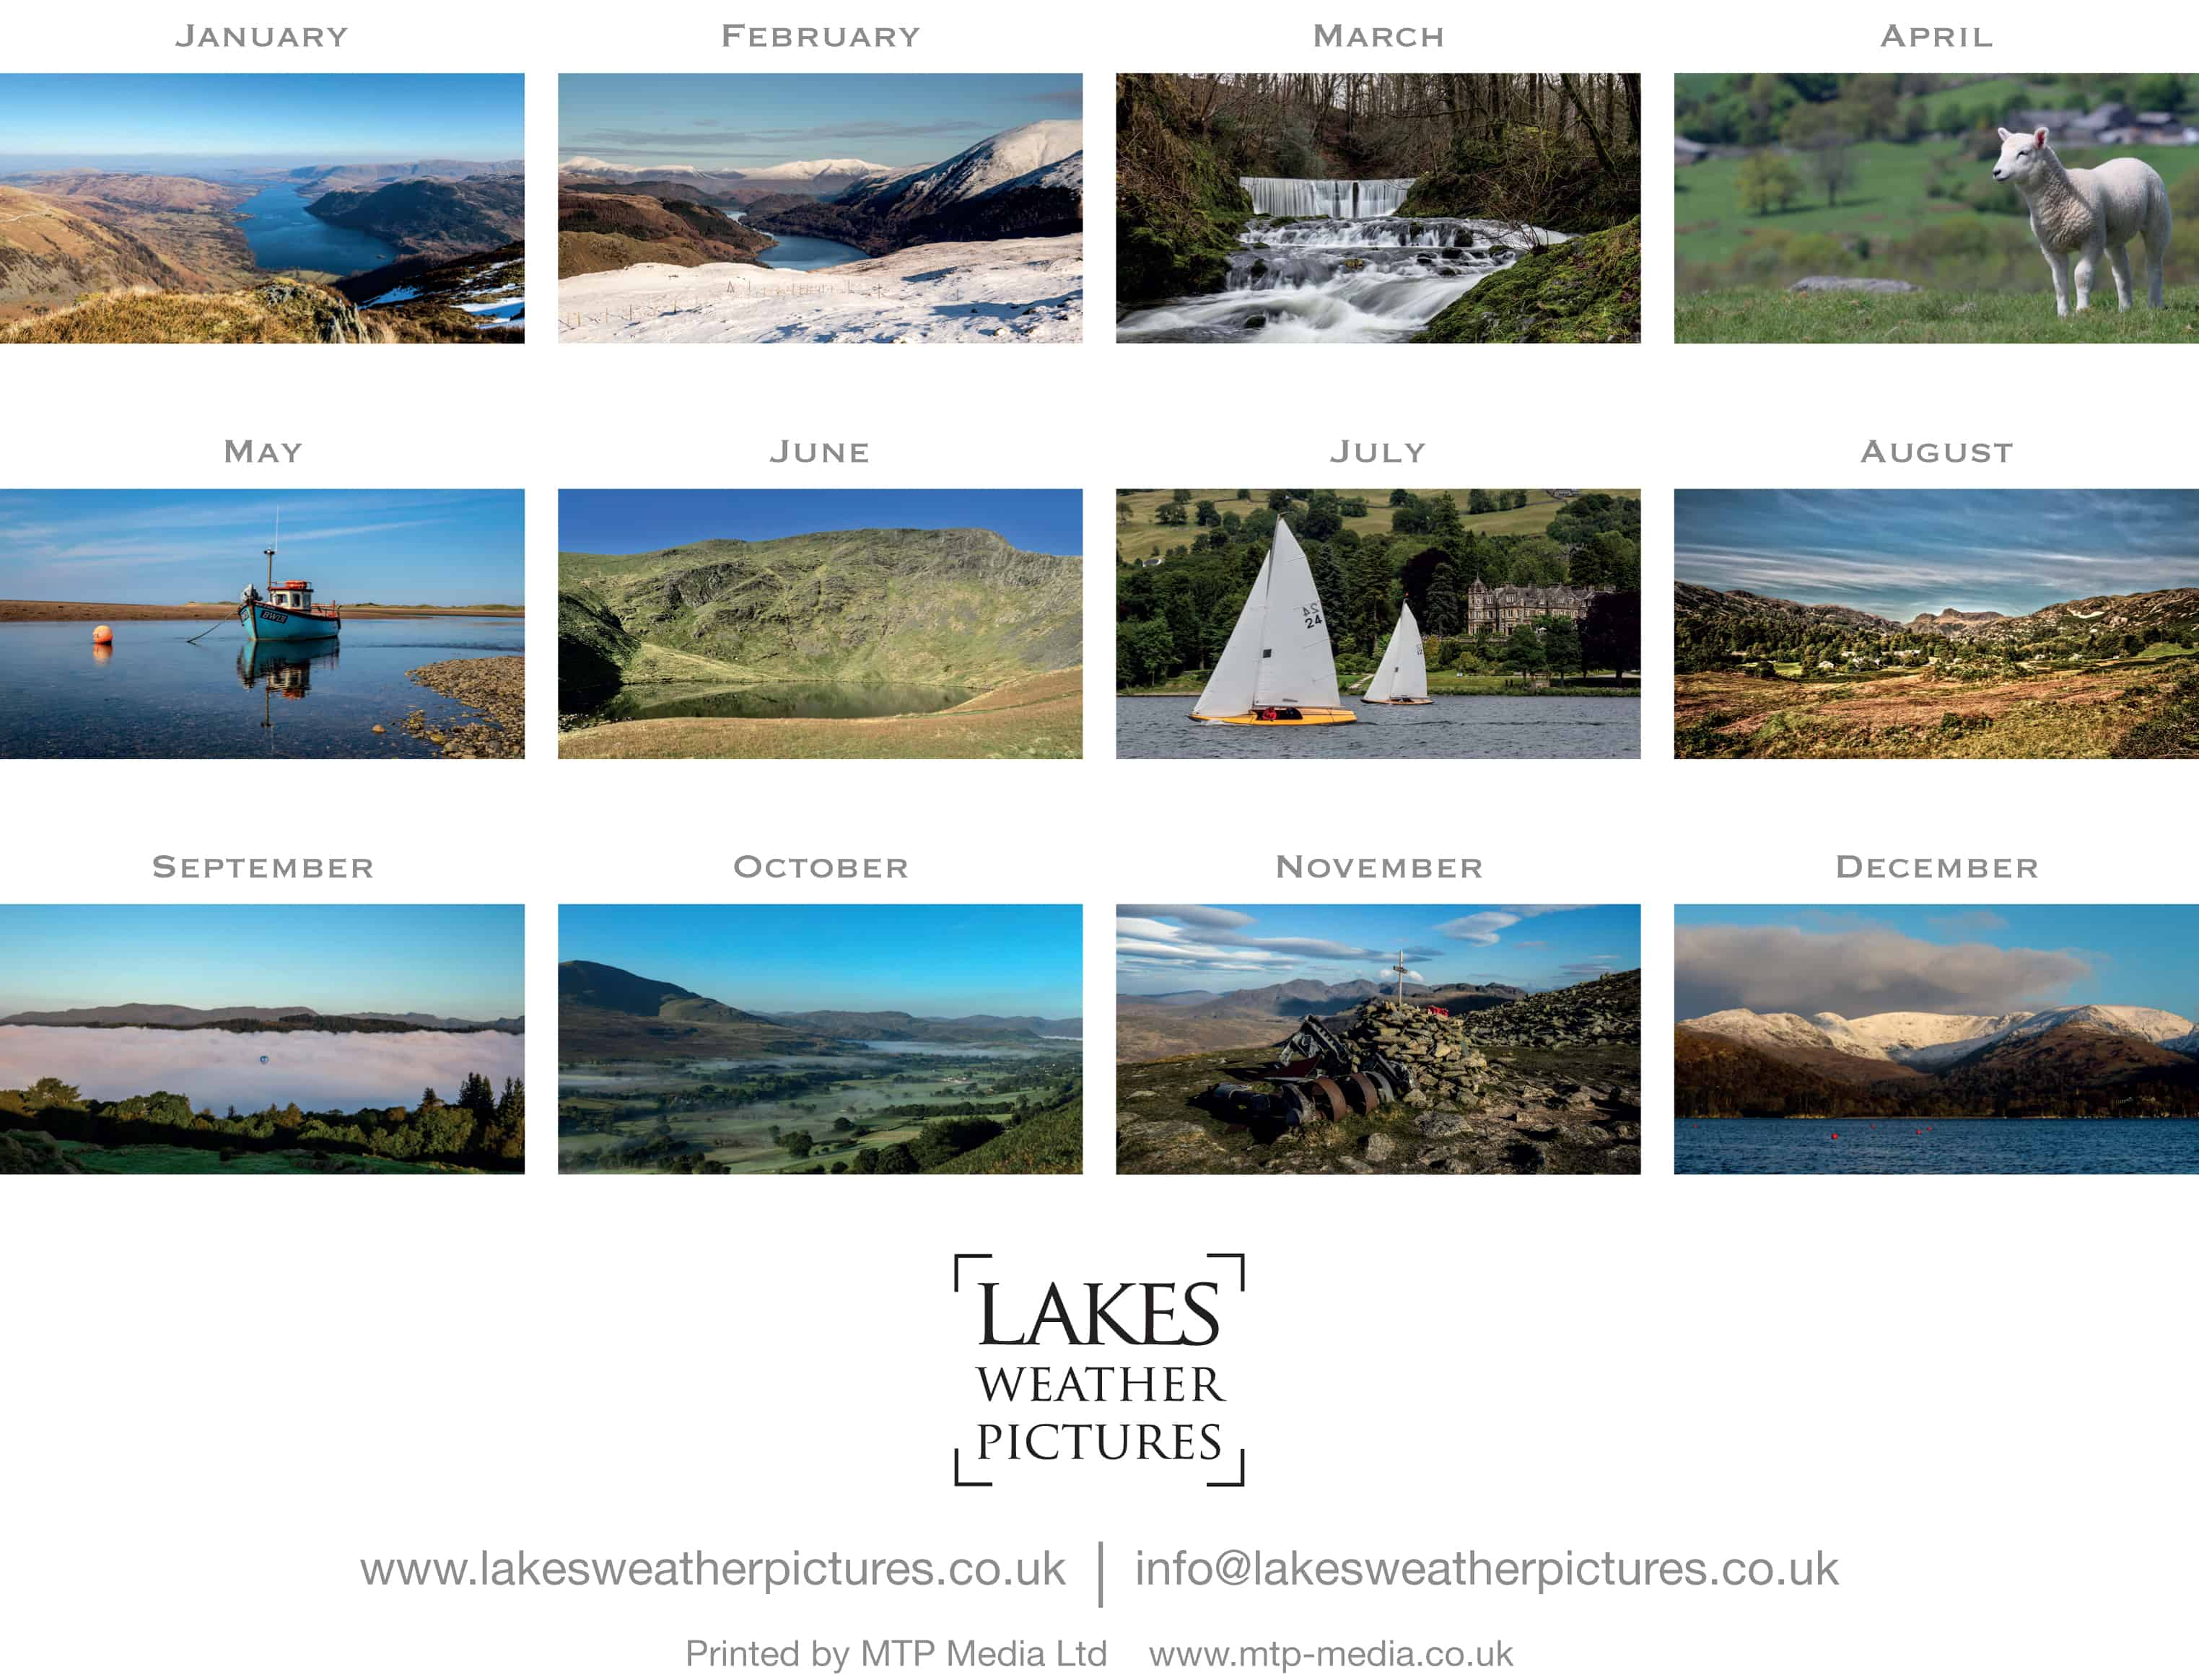 00000 Richard Rigg - Lakes Weather Pictures Calendar 2019.indd